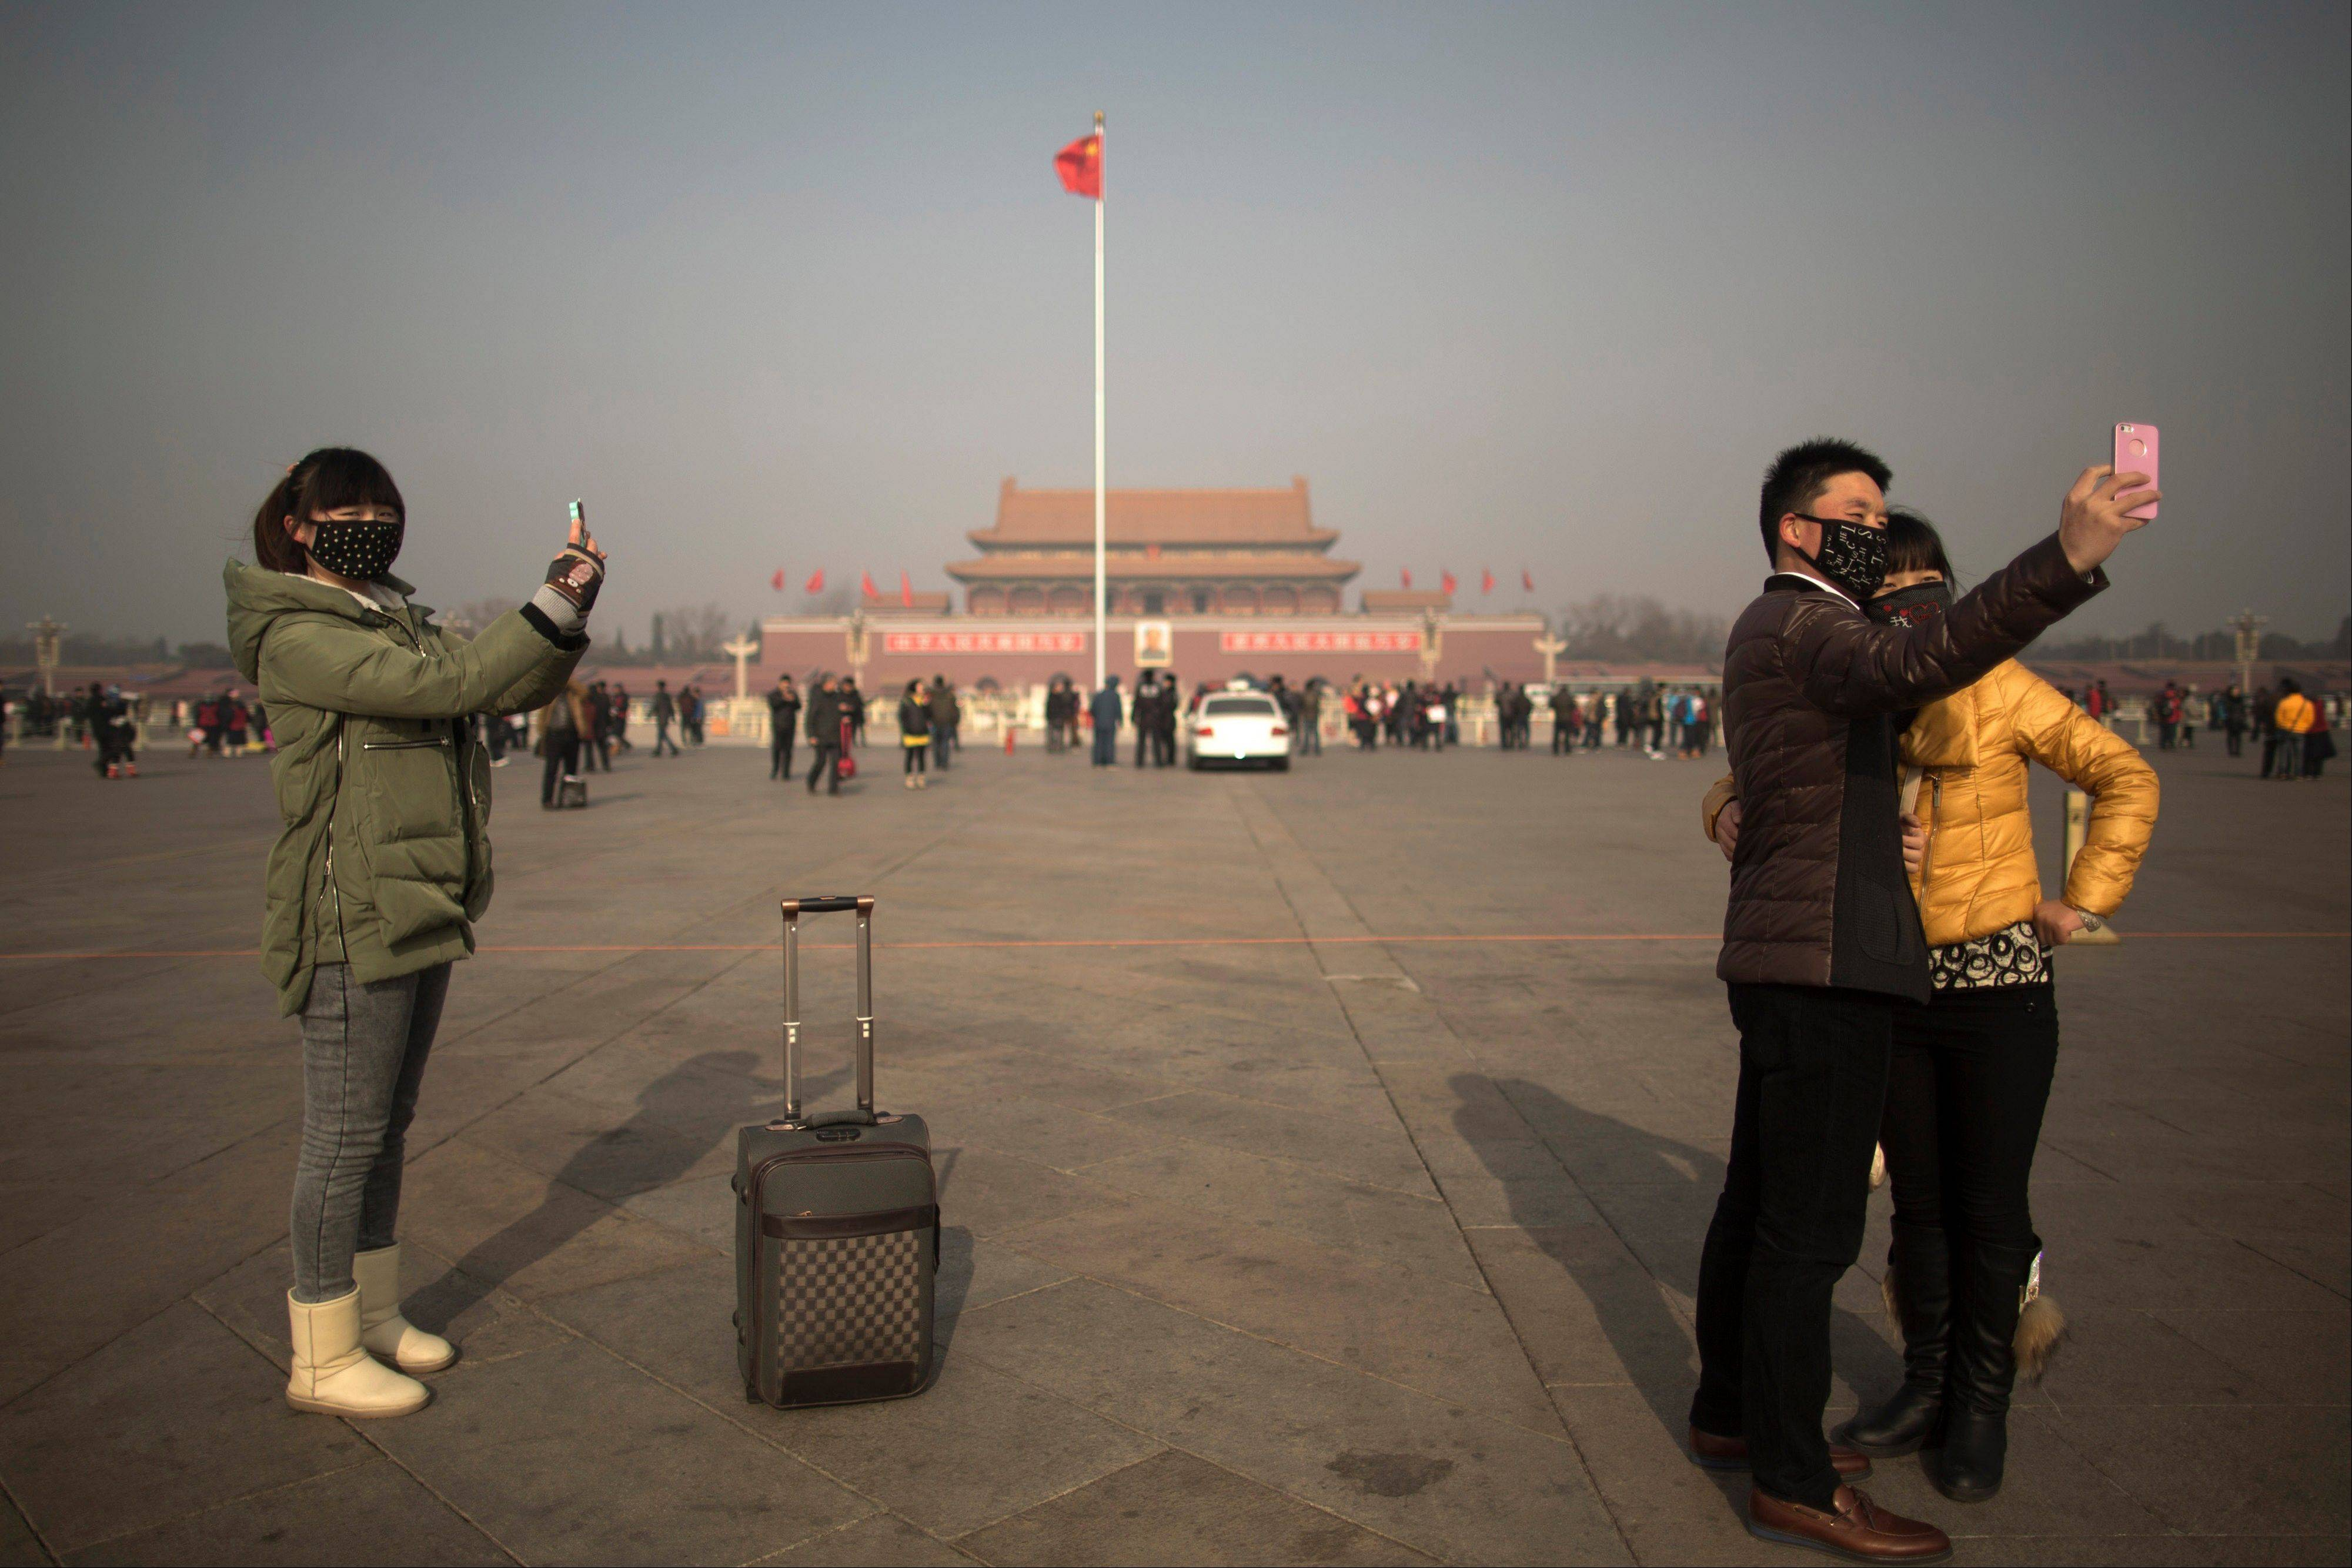 Tourists in masks use mobile phone cameras to snap shots of themselves during a heavily polluted day on Tiananmen Square in Beijing, China, Thursday. Beijing�s skyscrapers receded into a dense gray smog Thursday as the capital saw the season�s first wave of extremely dangerous pollution, with the concentration of toxic small particles registering more than two dozen times the level considered safe.